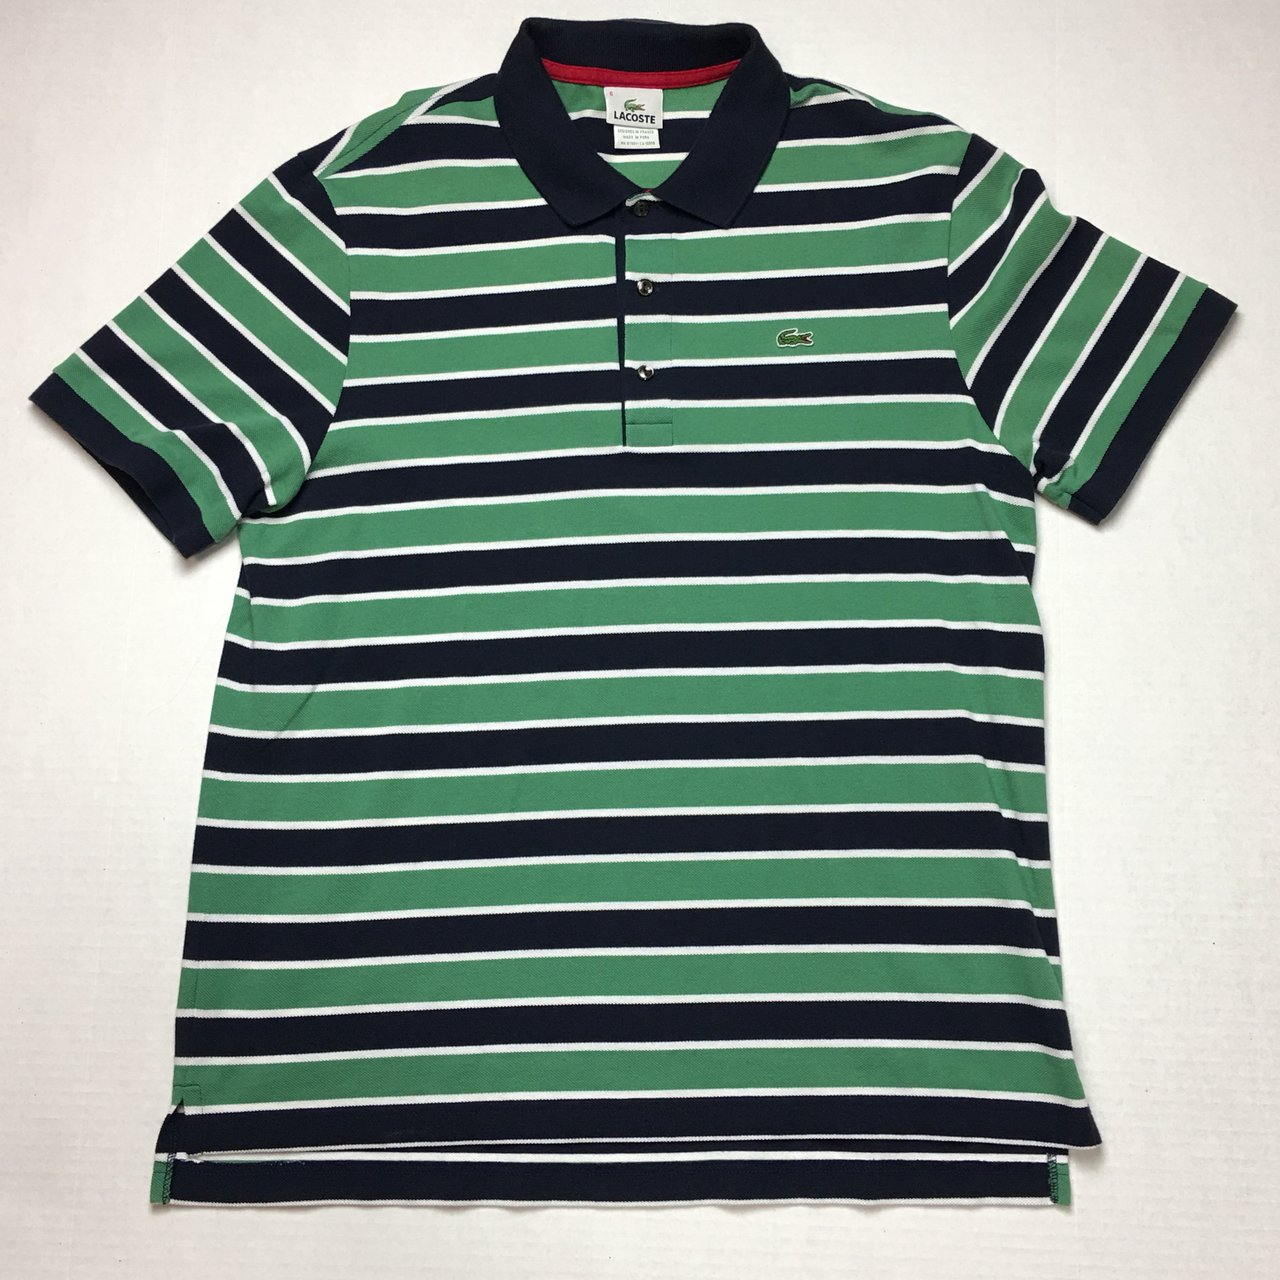 Lacoste Classic Striped Polo Shirt Size L Tagged Eu 6 But Depop